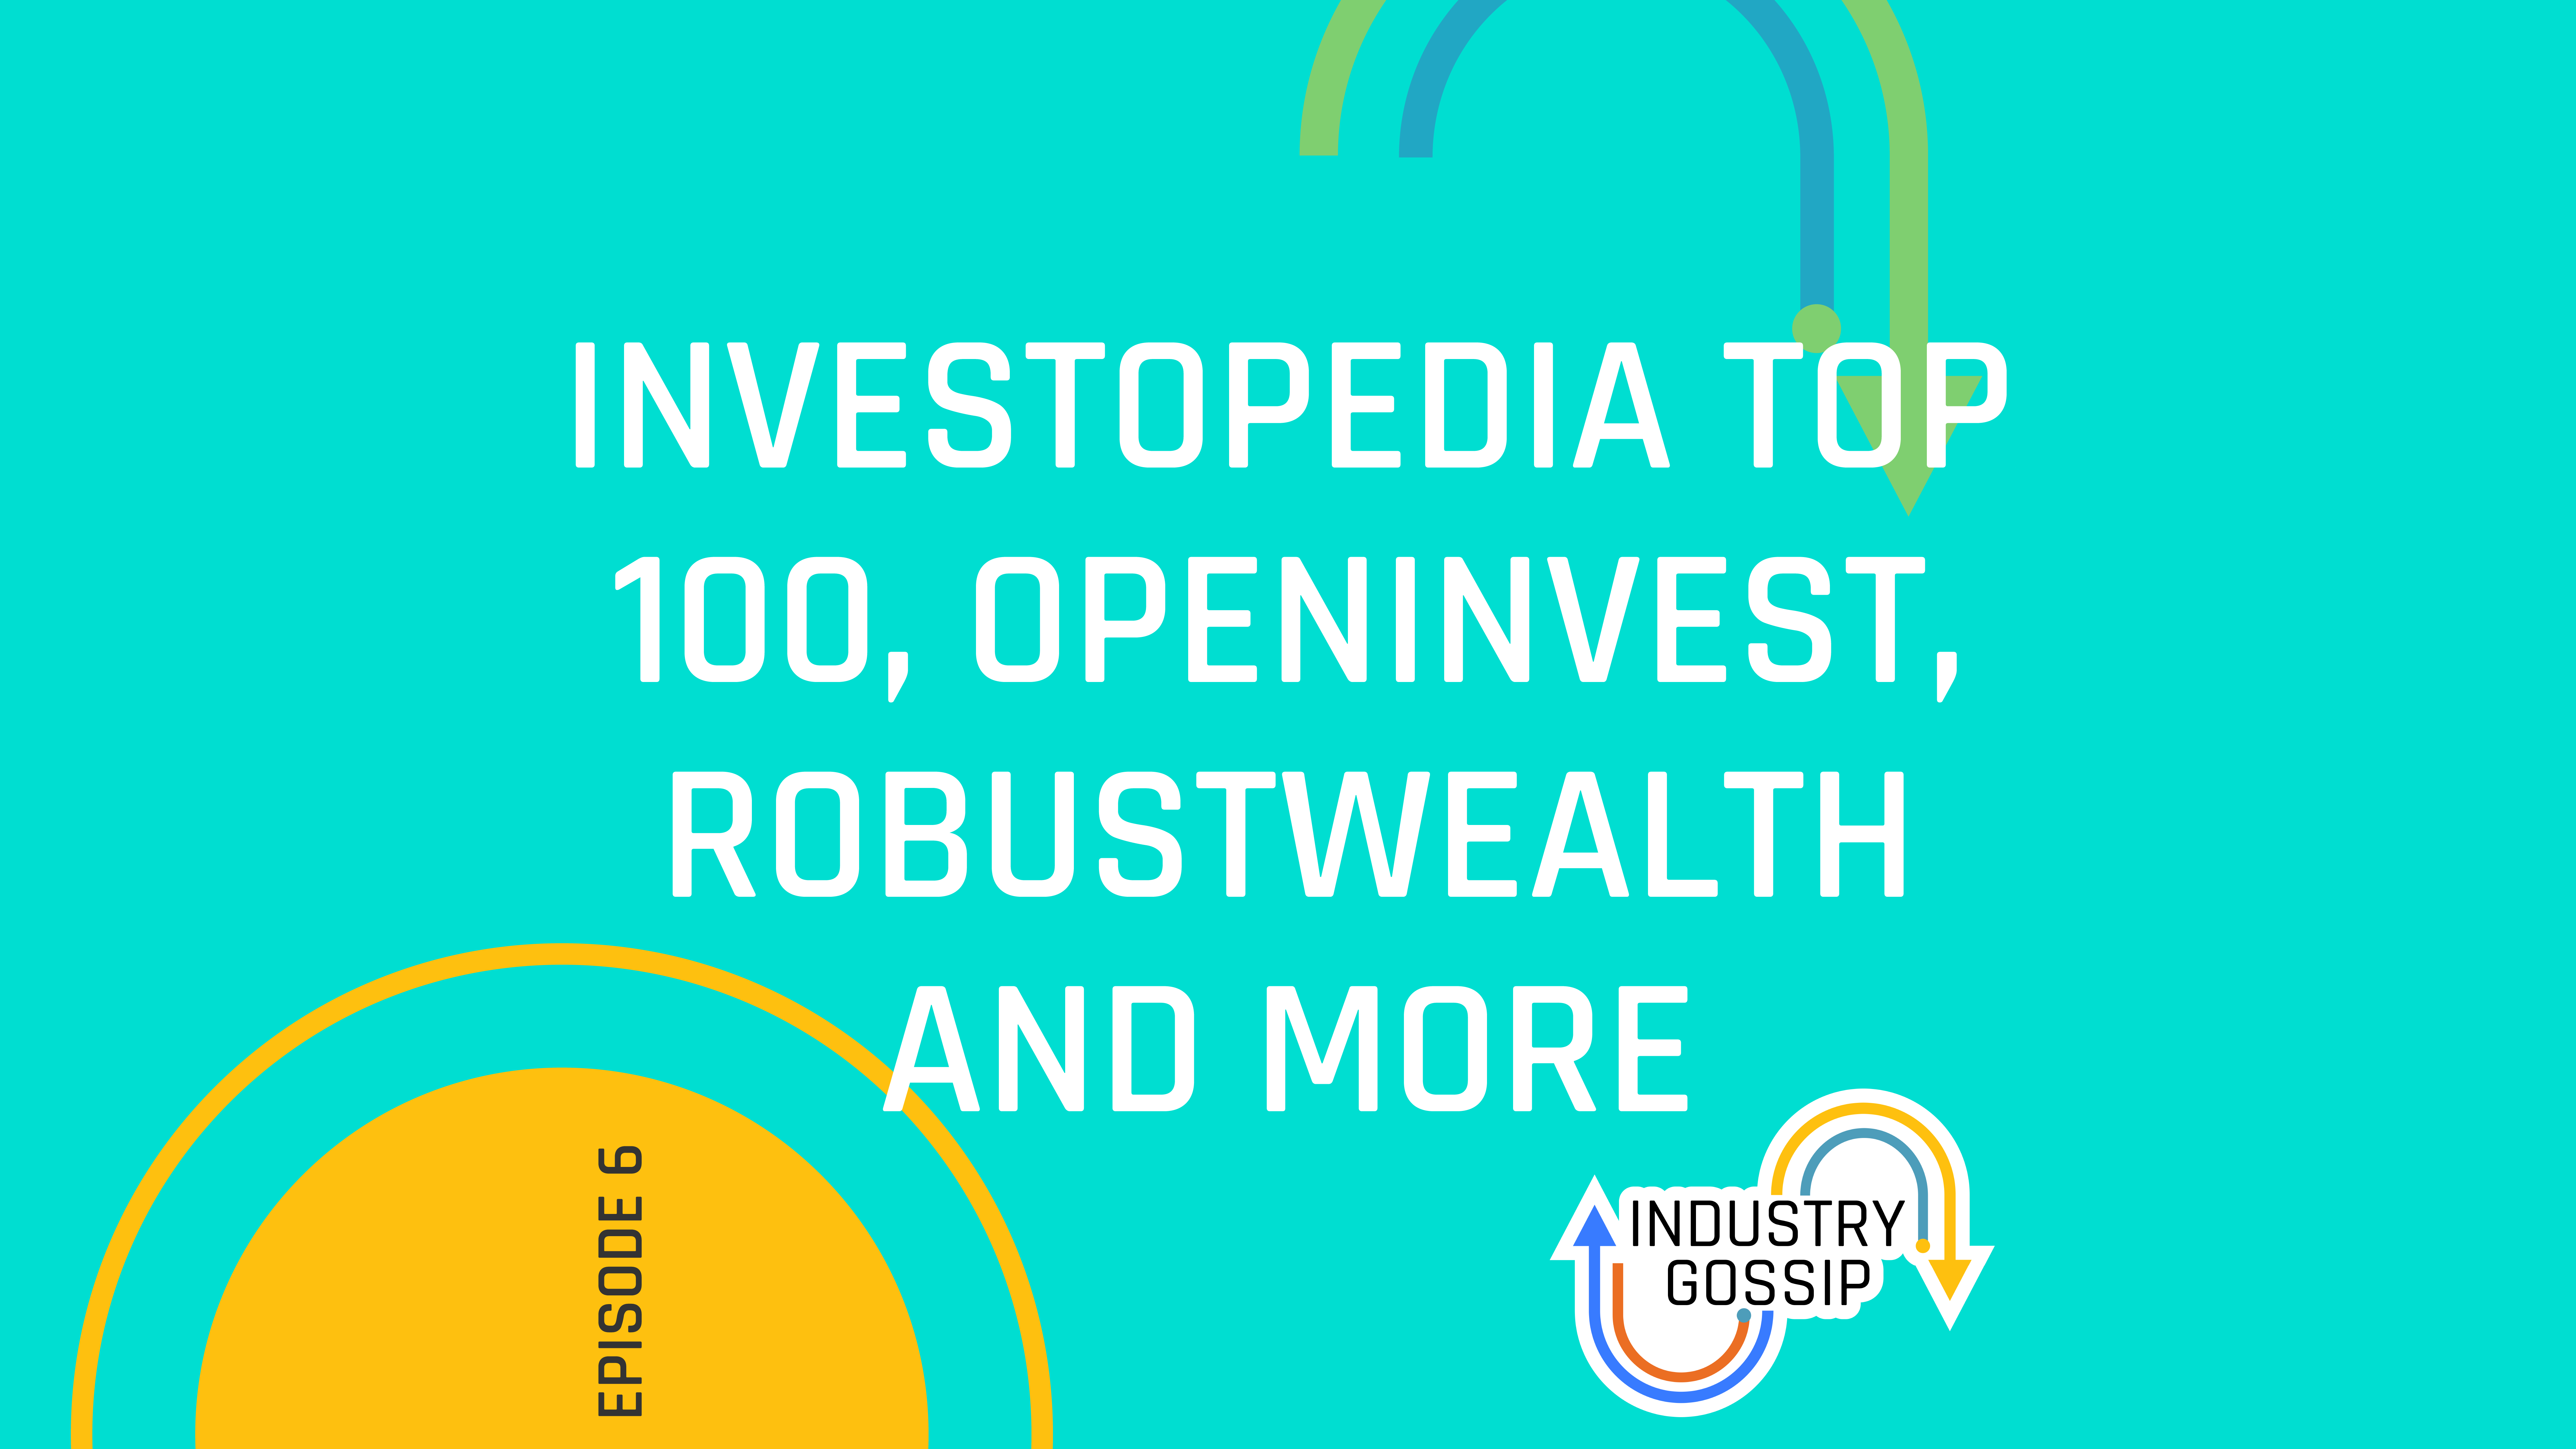 Industry Gossip (E6)  Investopedia Top 100, RobustWealth and more